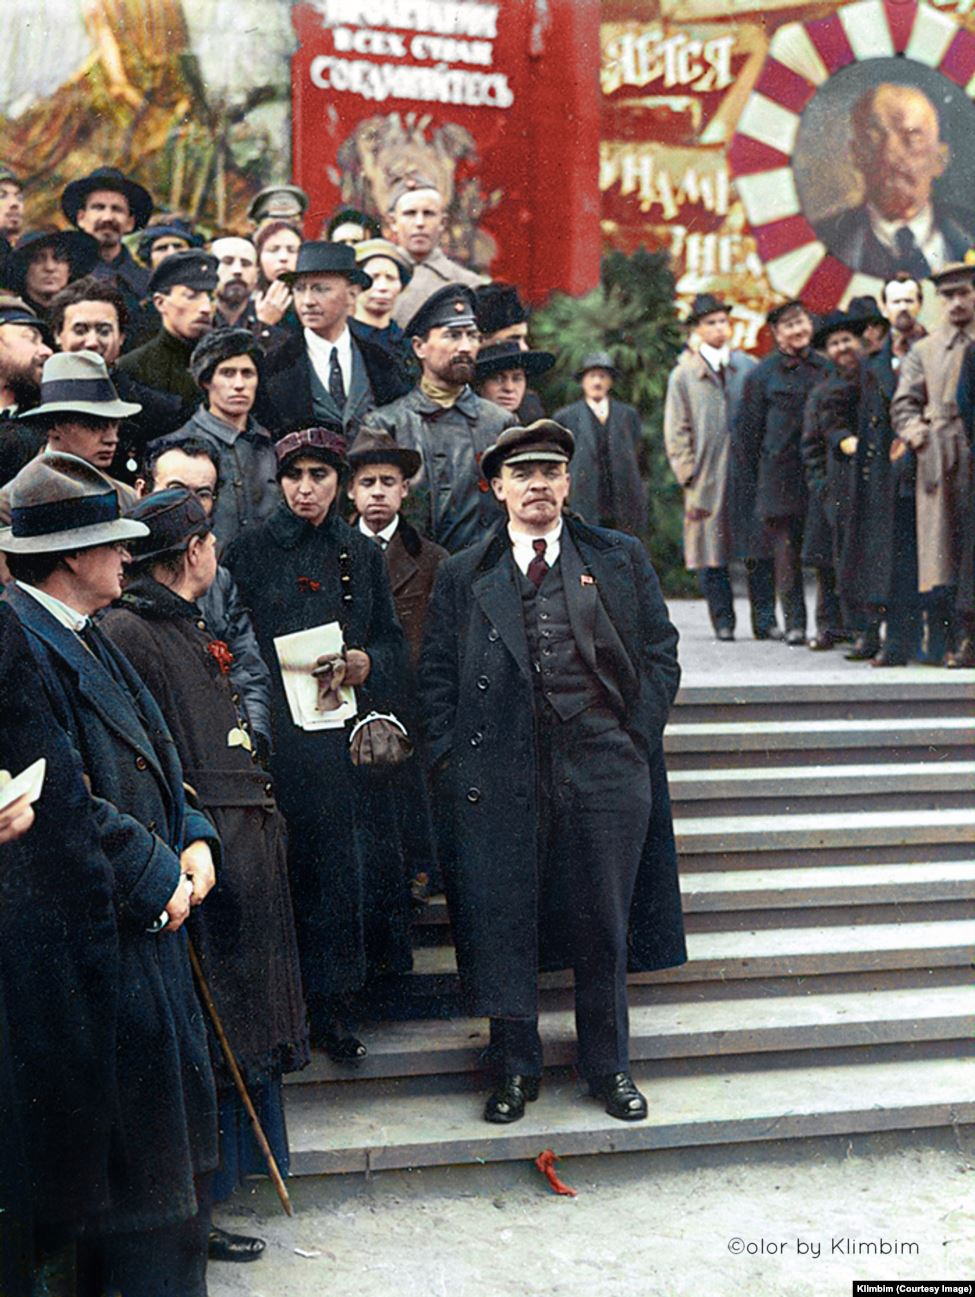 An image of Vladimir Lenin that was published on Shirnina's Facebook and Instagram accounts -- without problem.